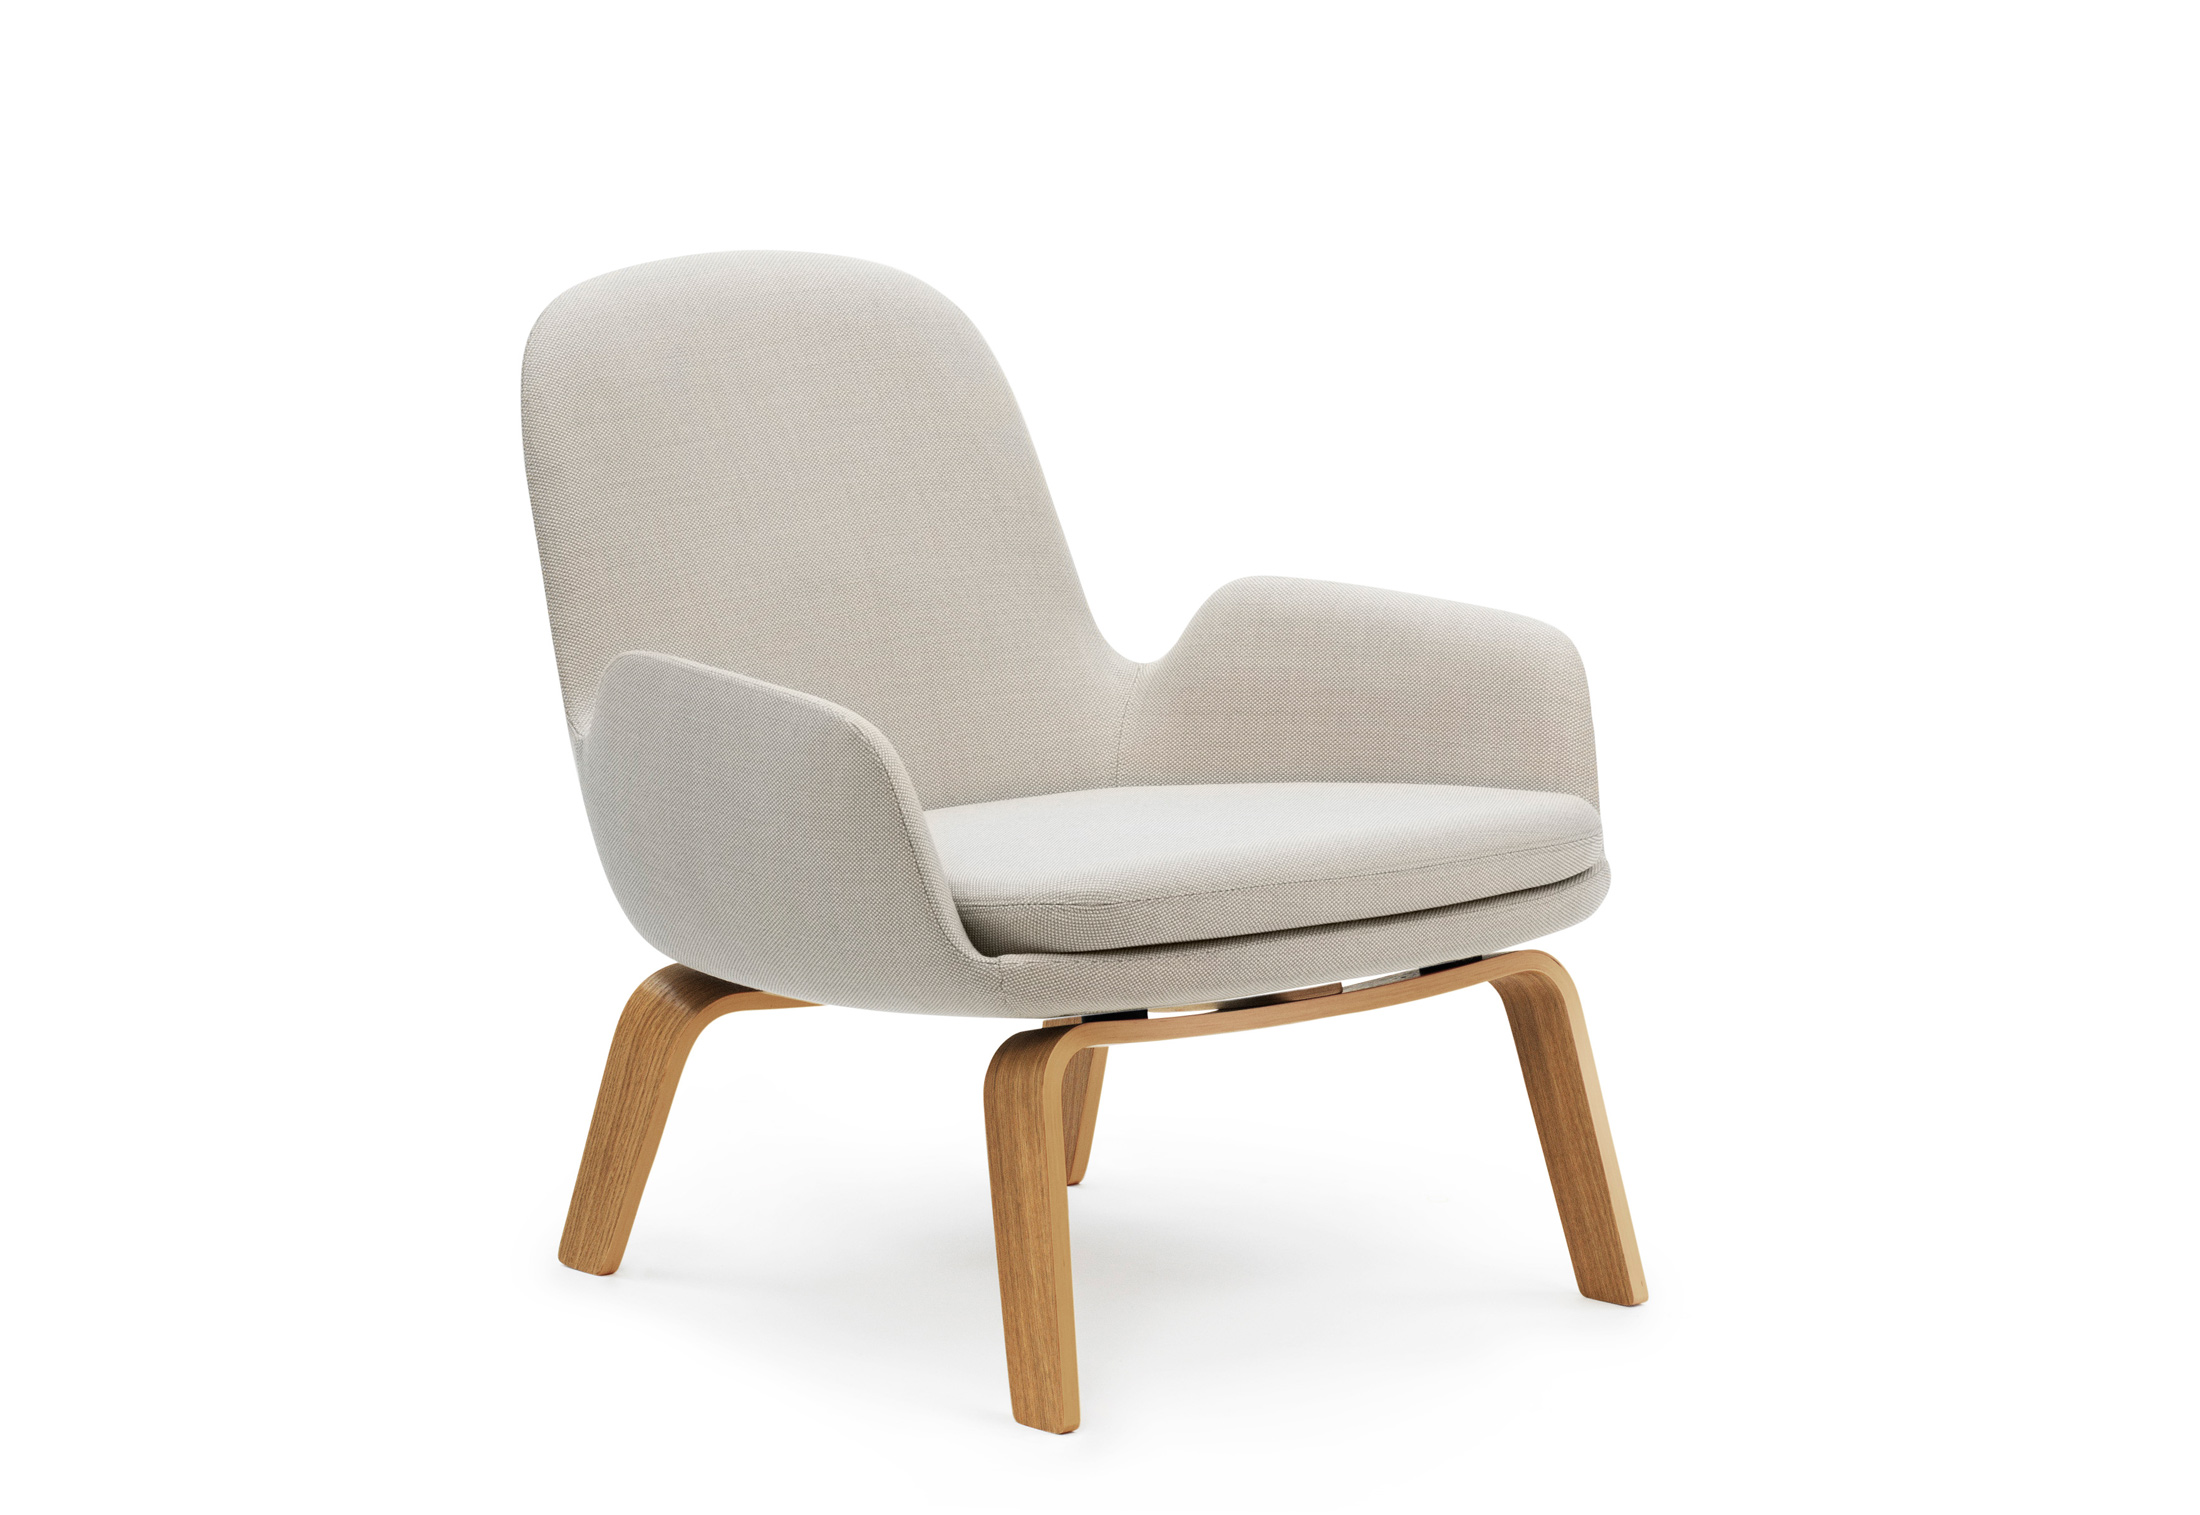 Era Lounge Chair By Normann Copenhagen Stylepark